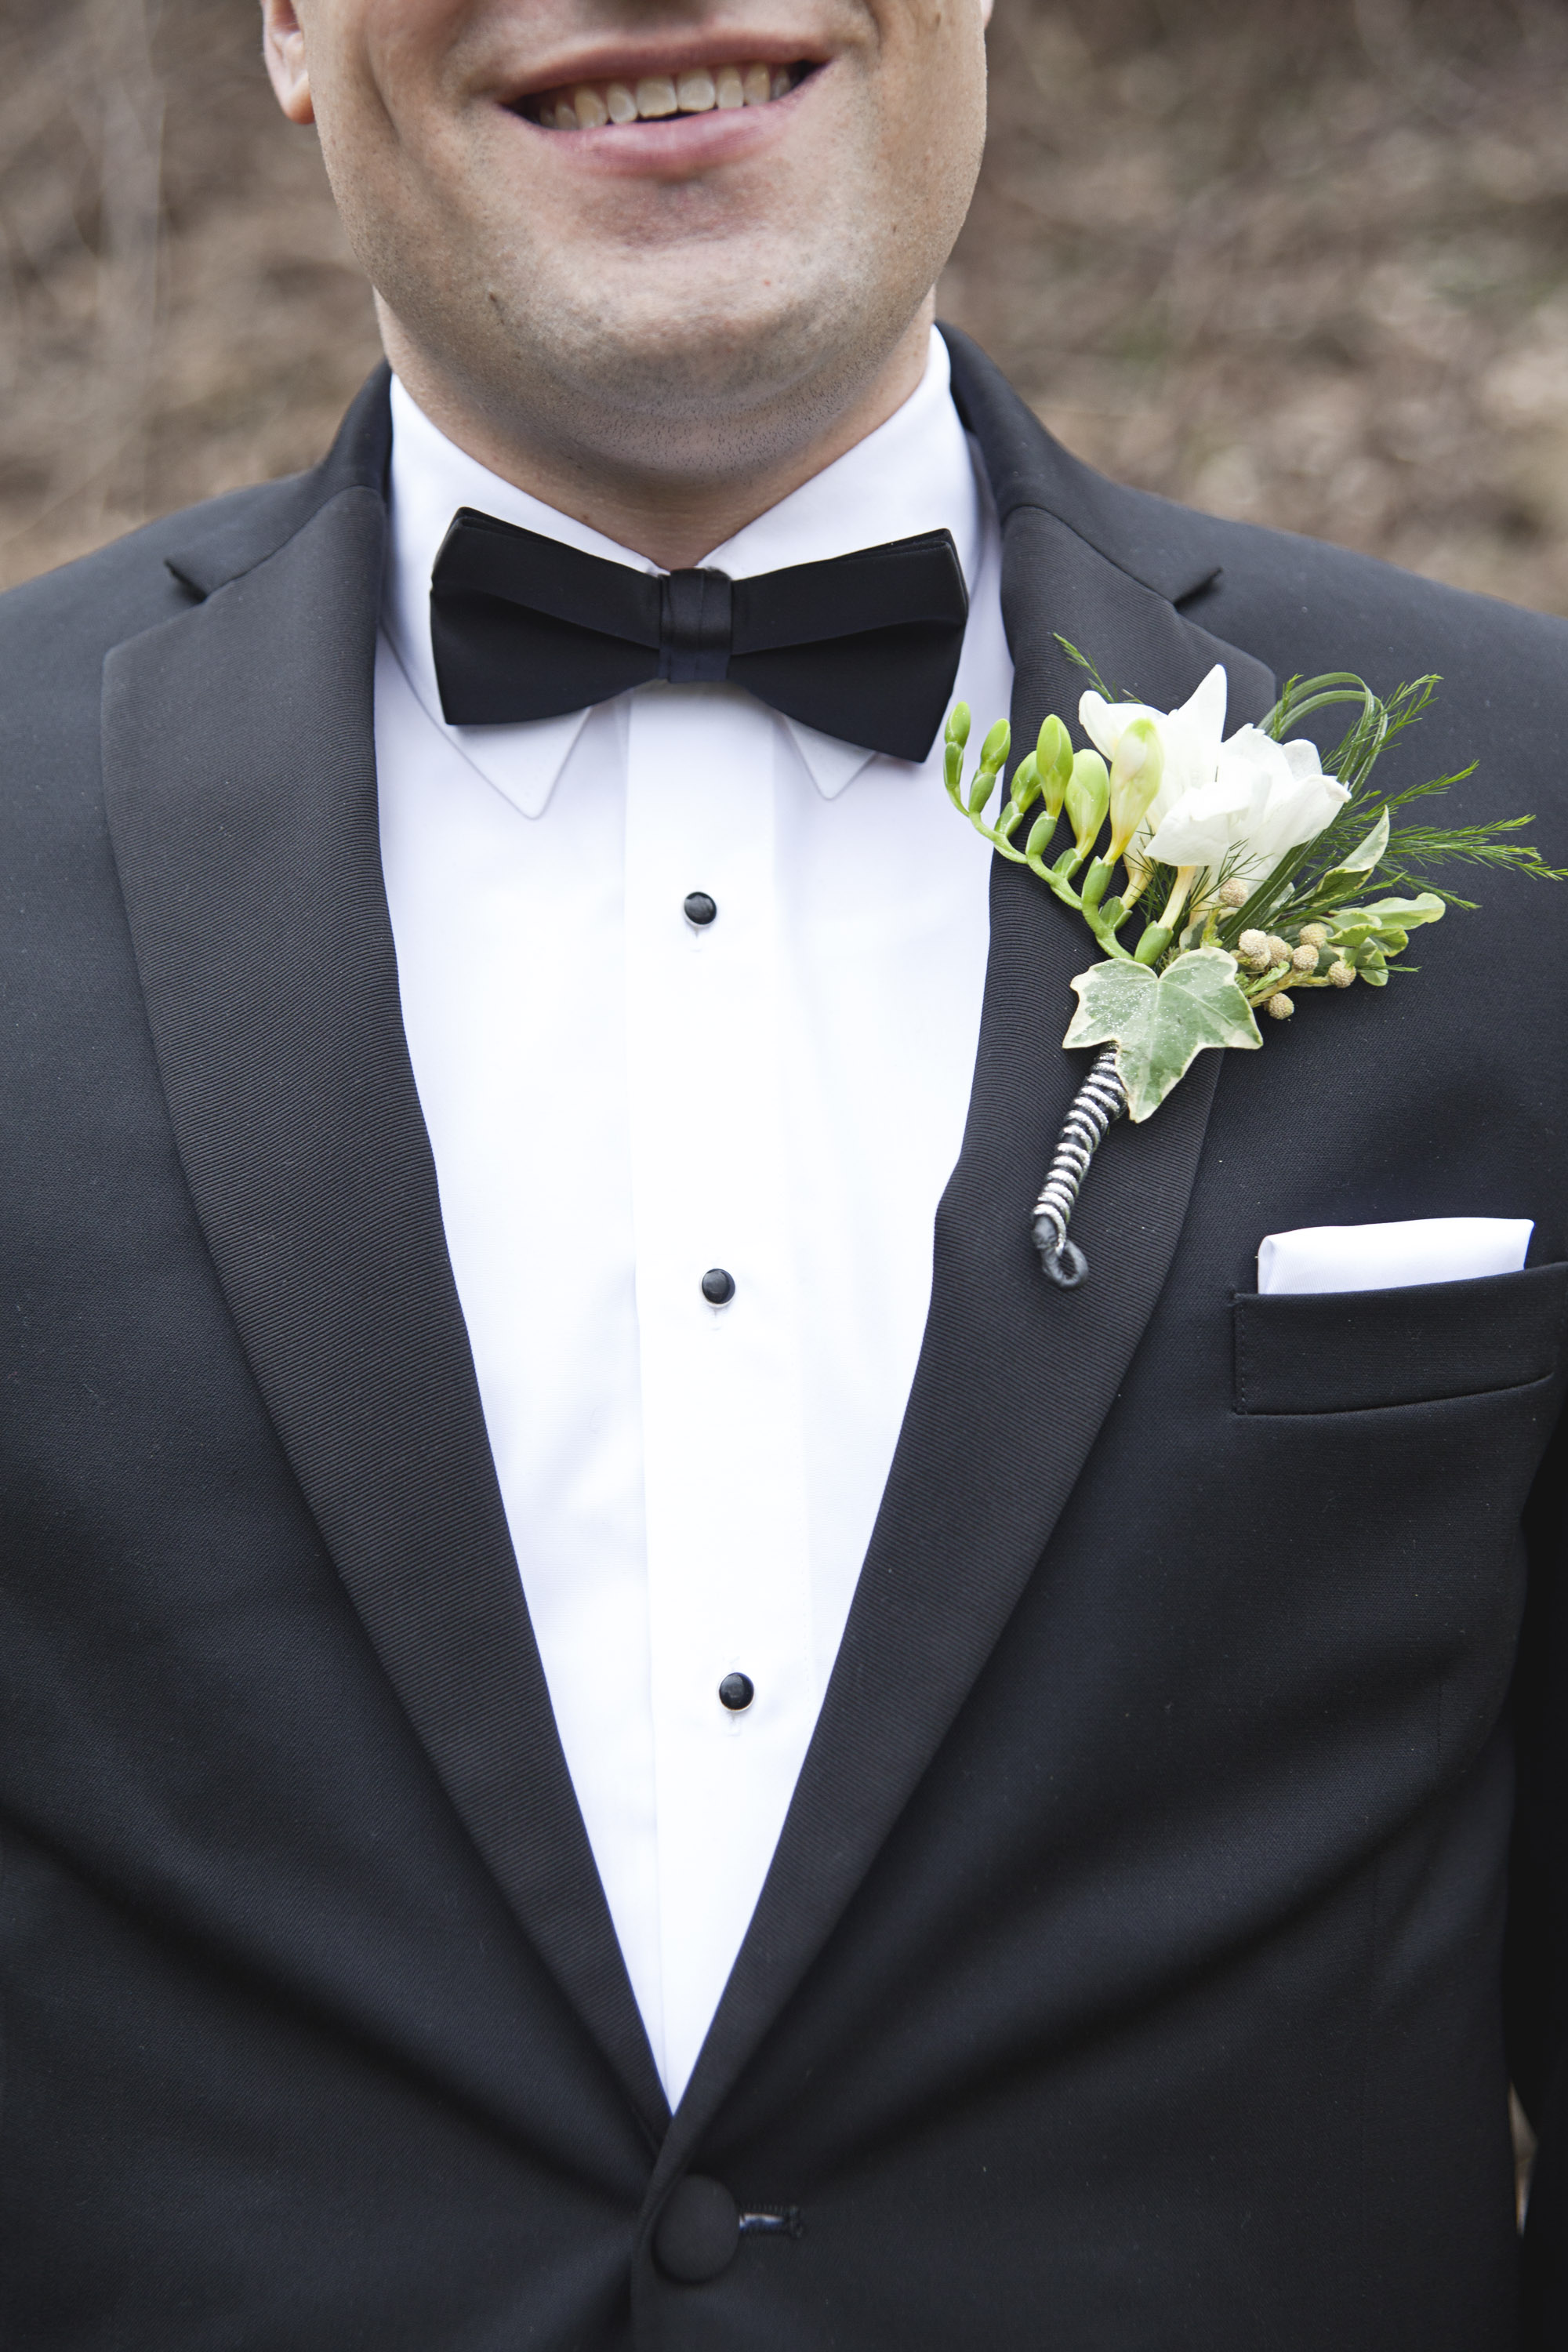 Stylish groom details with boutonniere